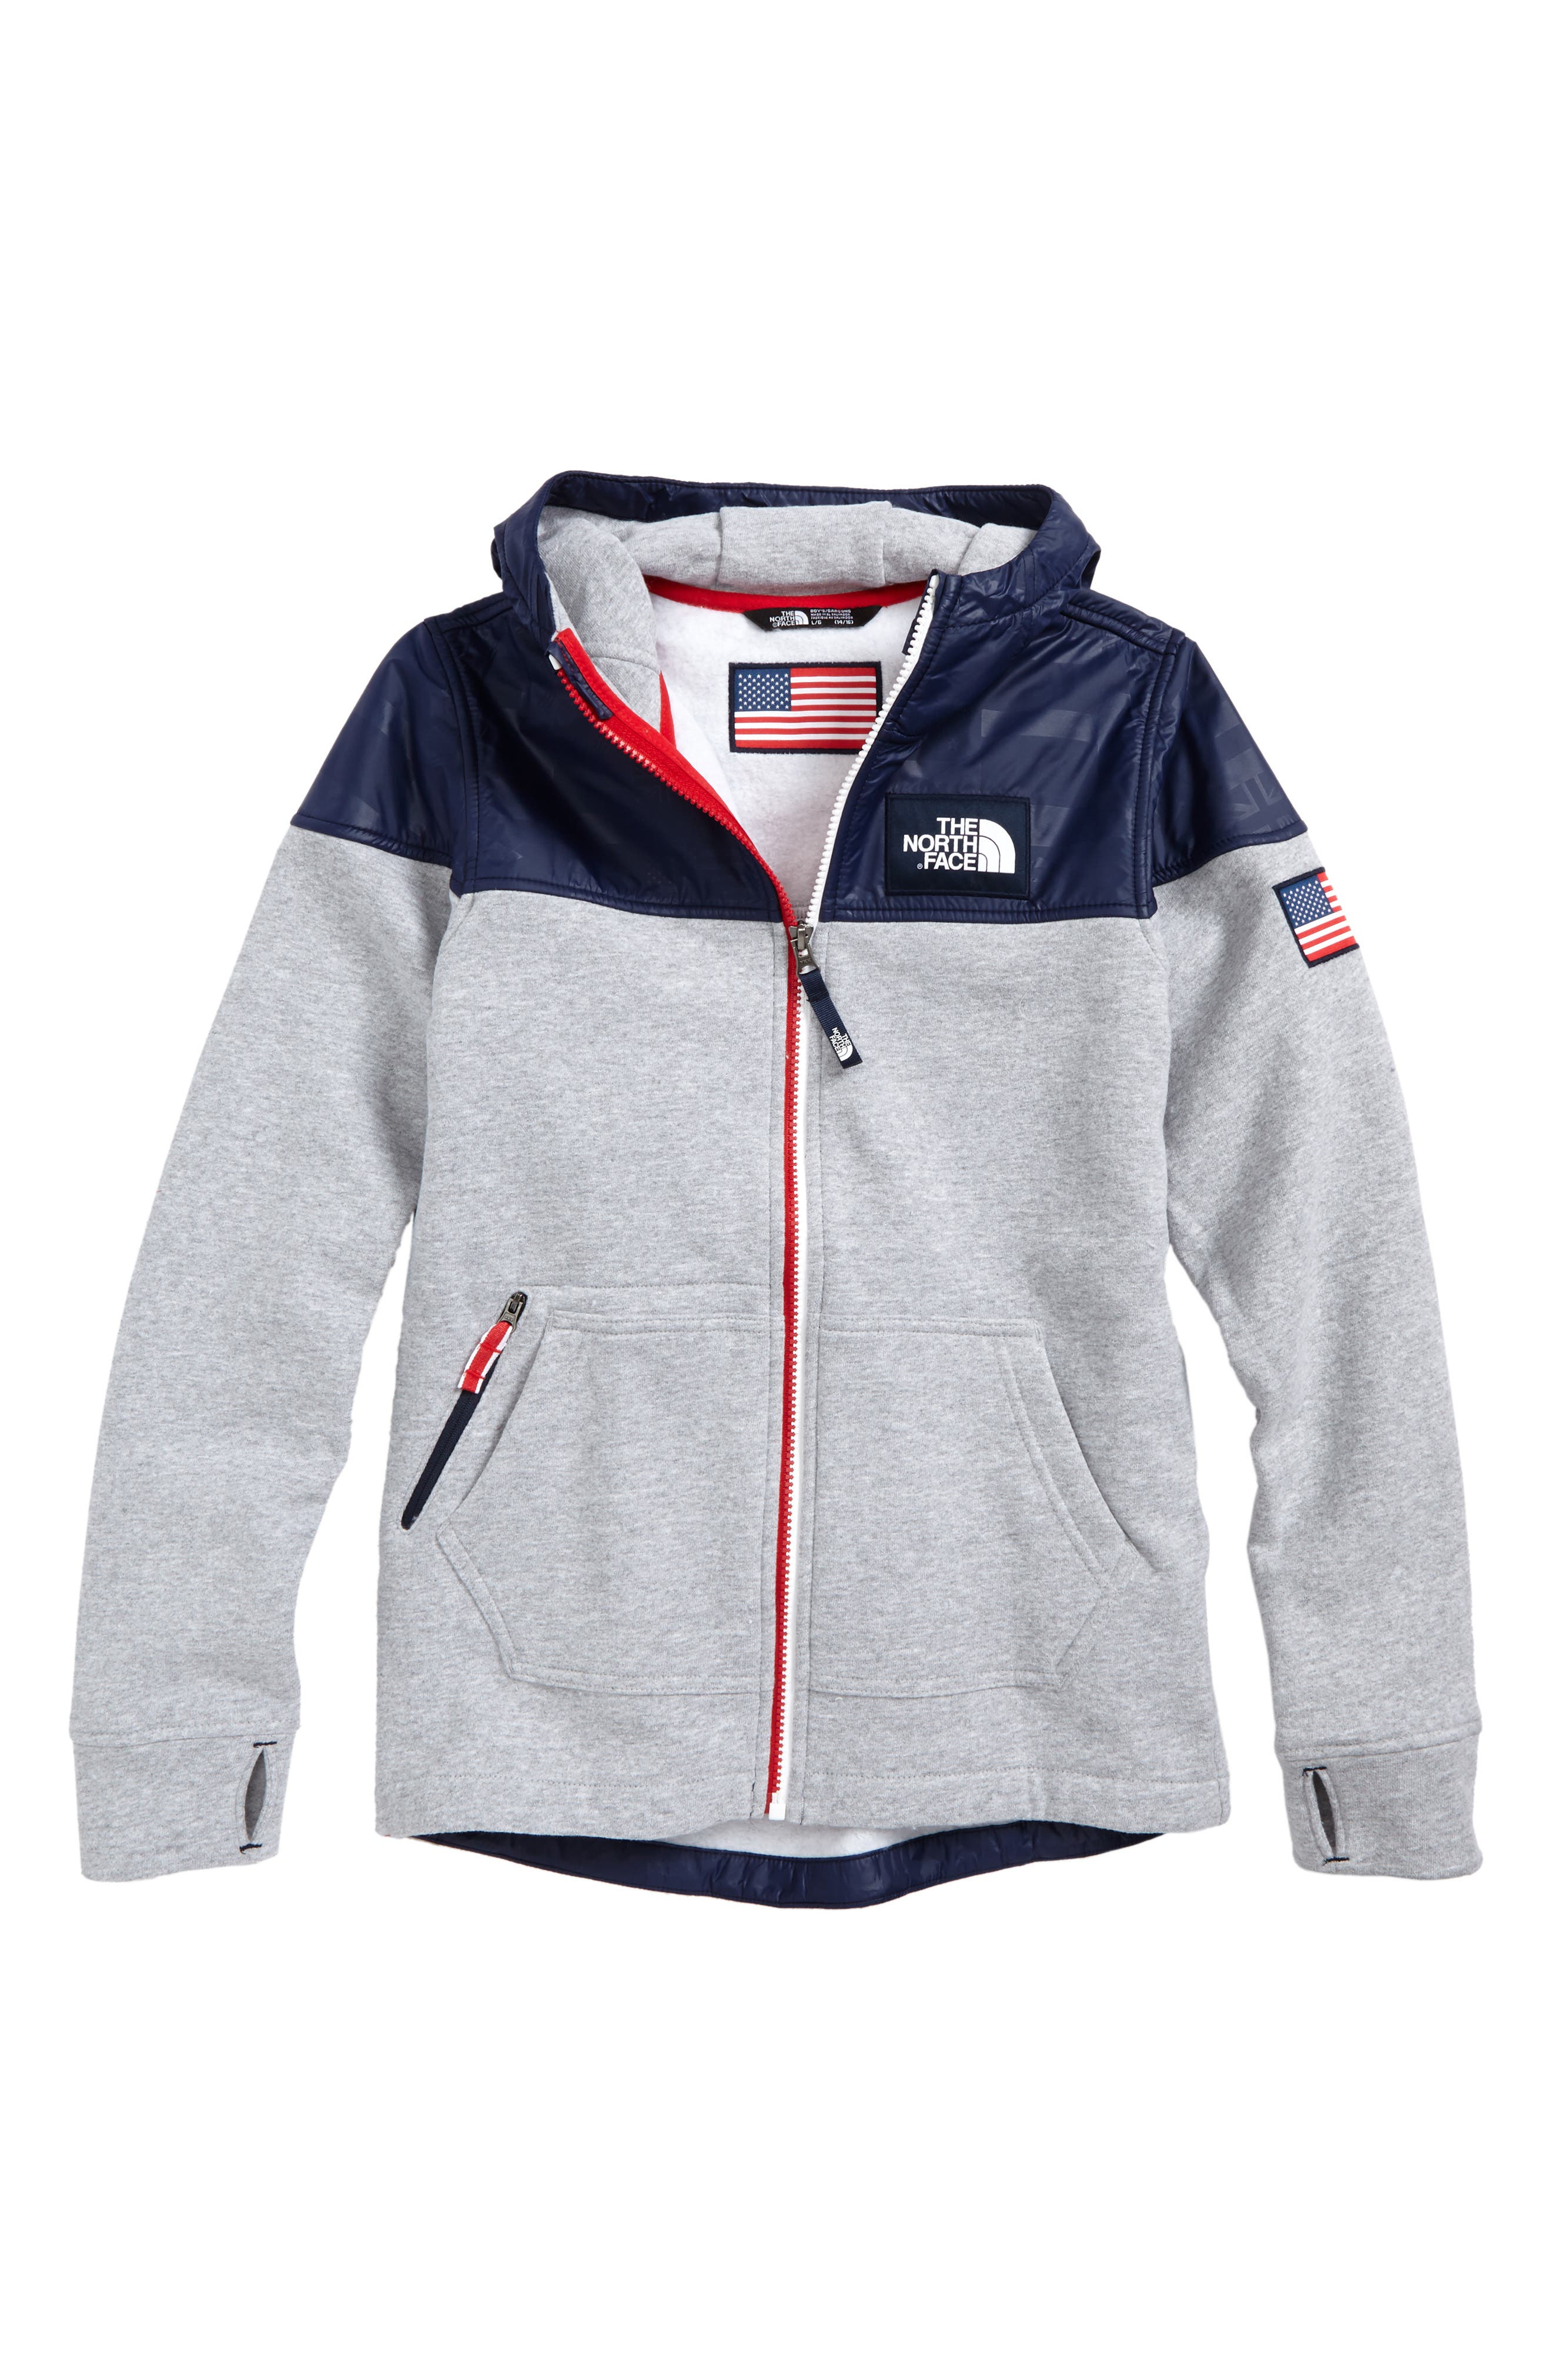 International Collection Zip Hoodie,                             Main thumbnail 2, color,